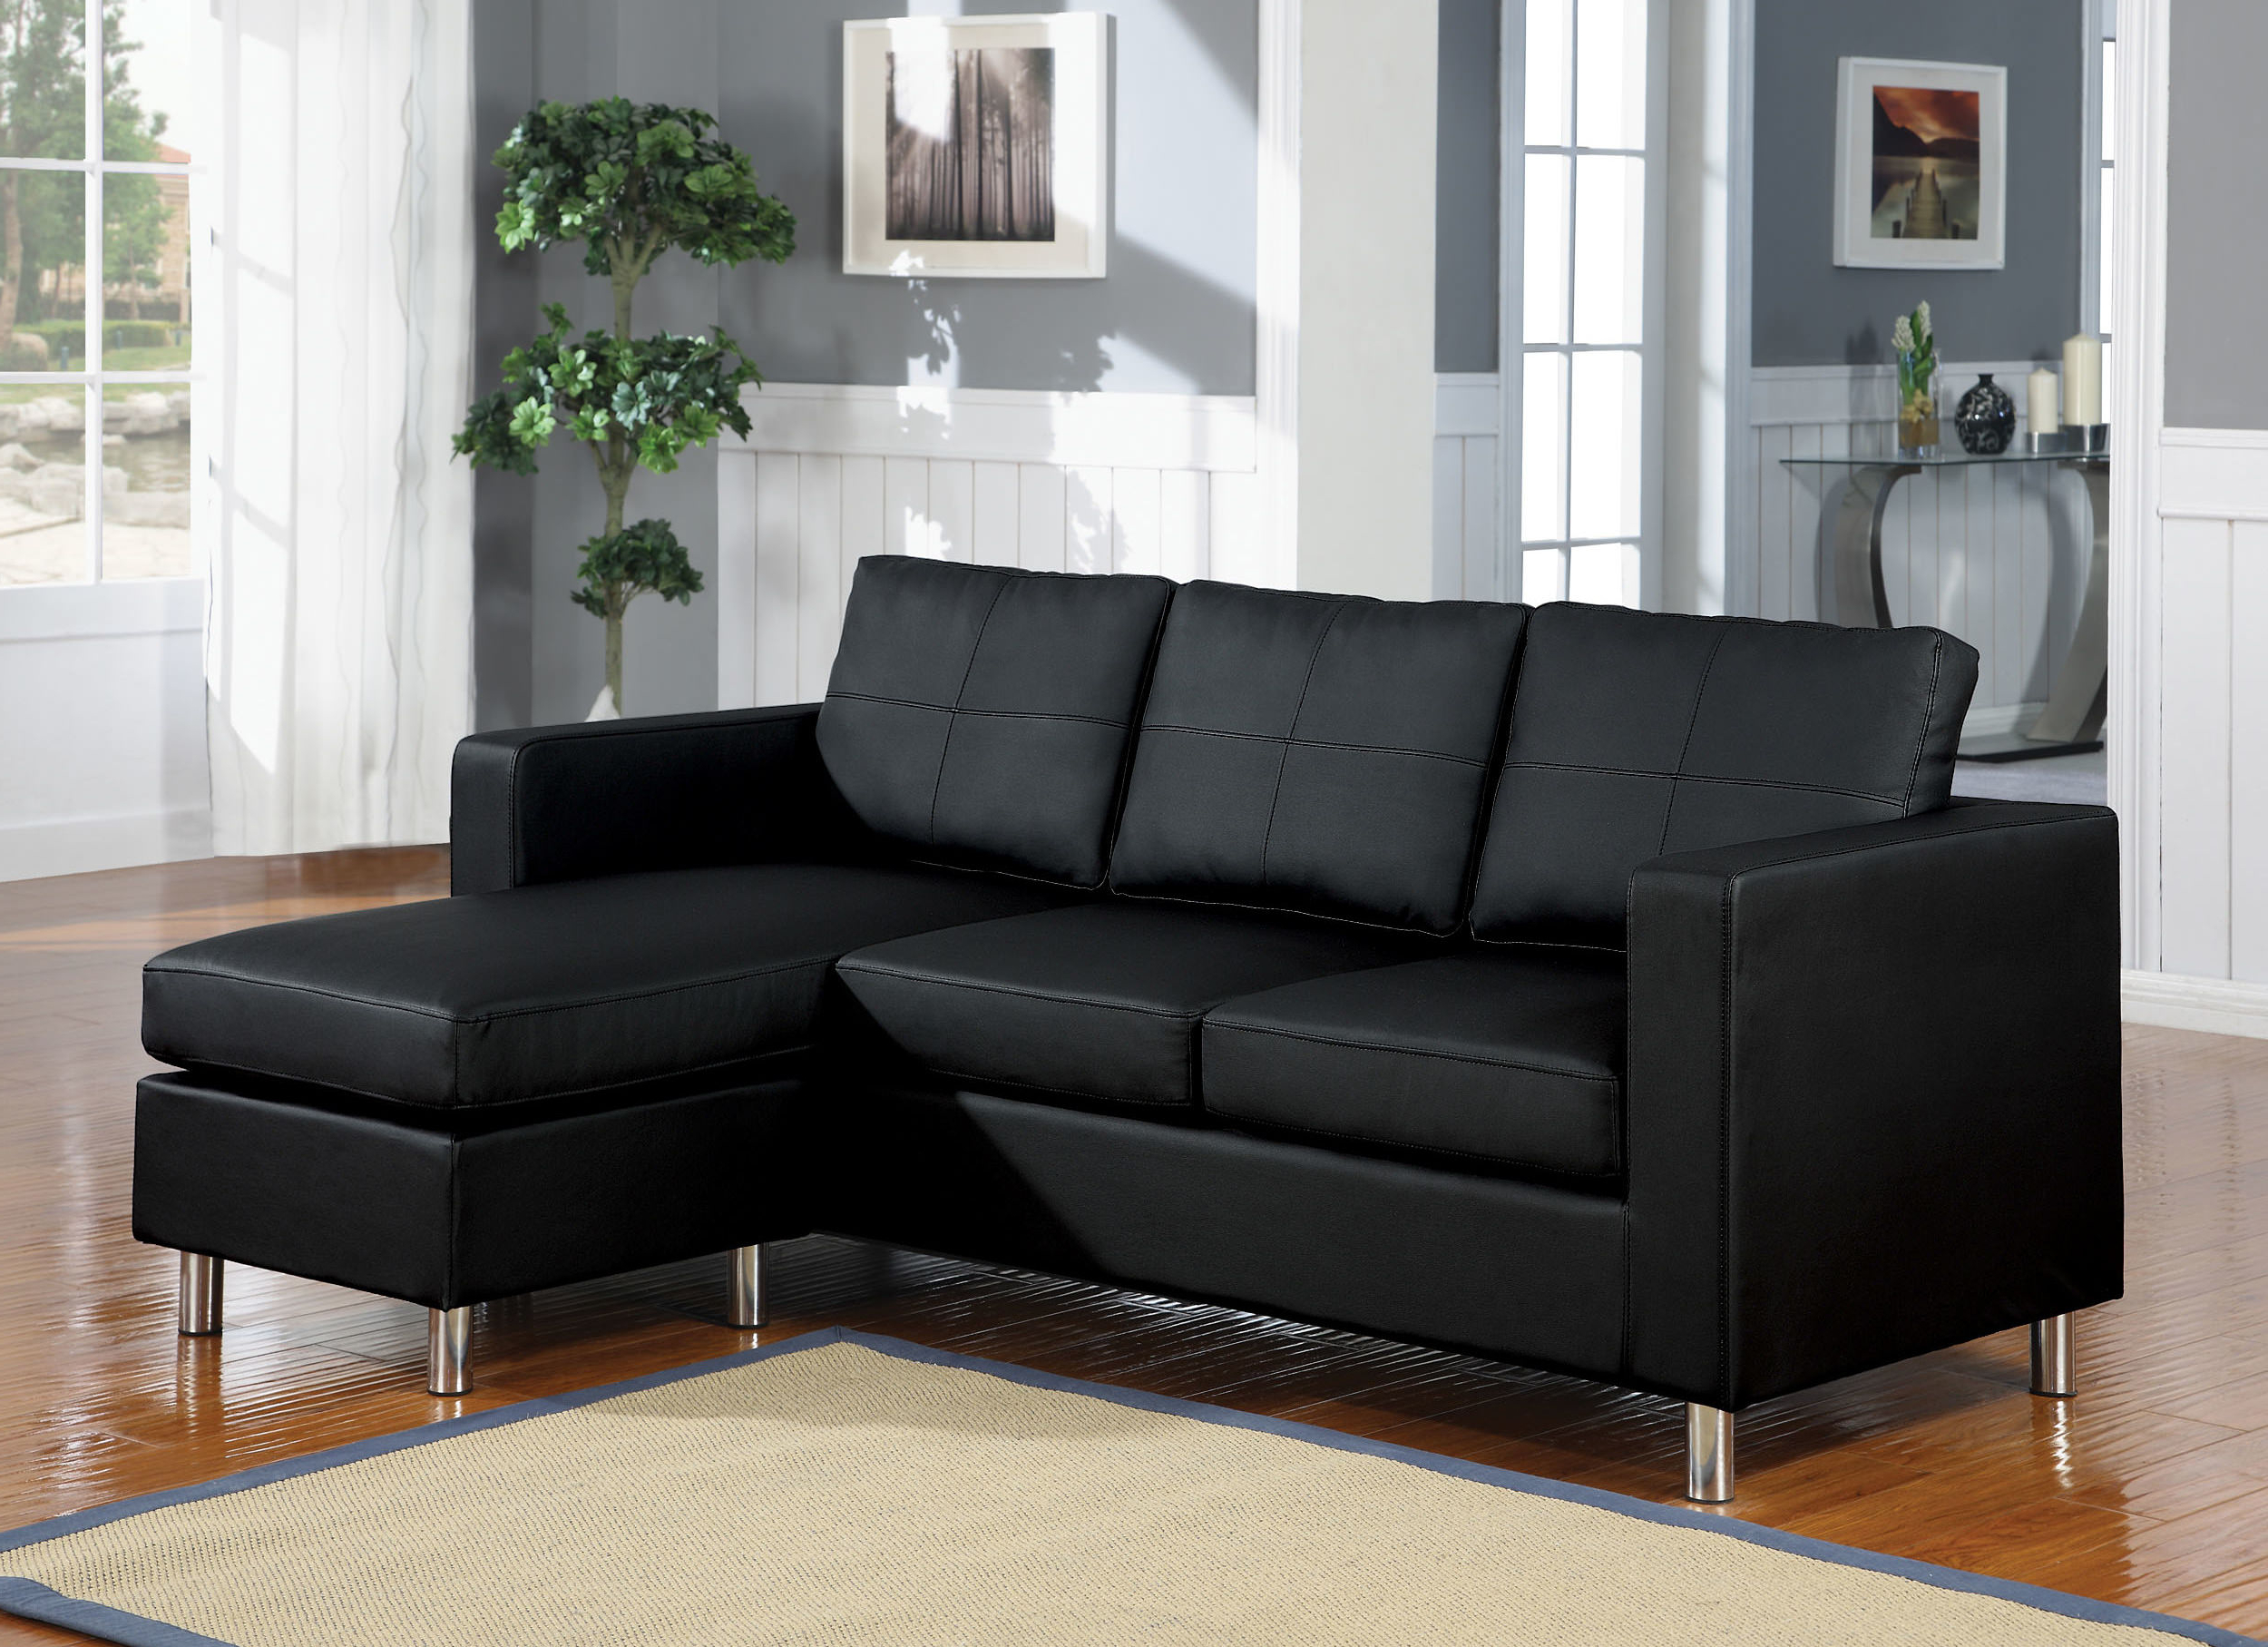 Widely Used Paul Modular Sectional Sofas Blue Pertaining To 20+ Modular Sectional Sofas Designs, Ideas, Plans, Model (View 17 of 25)